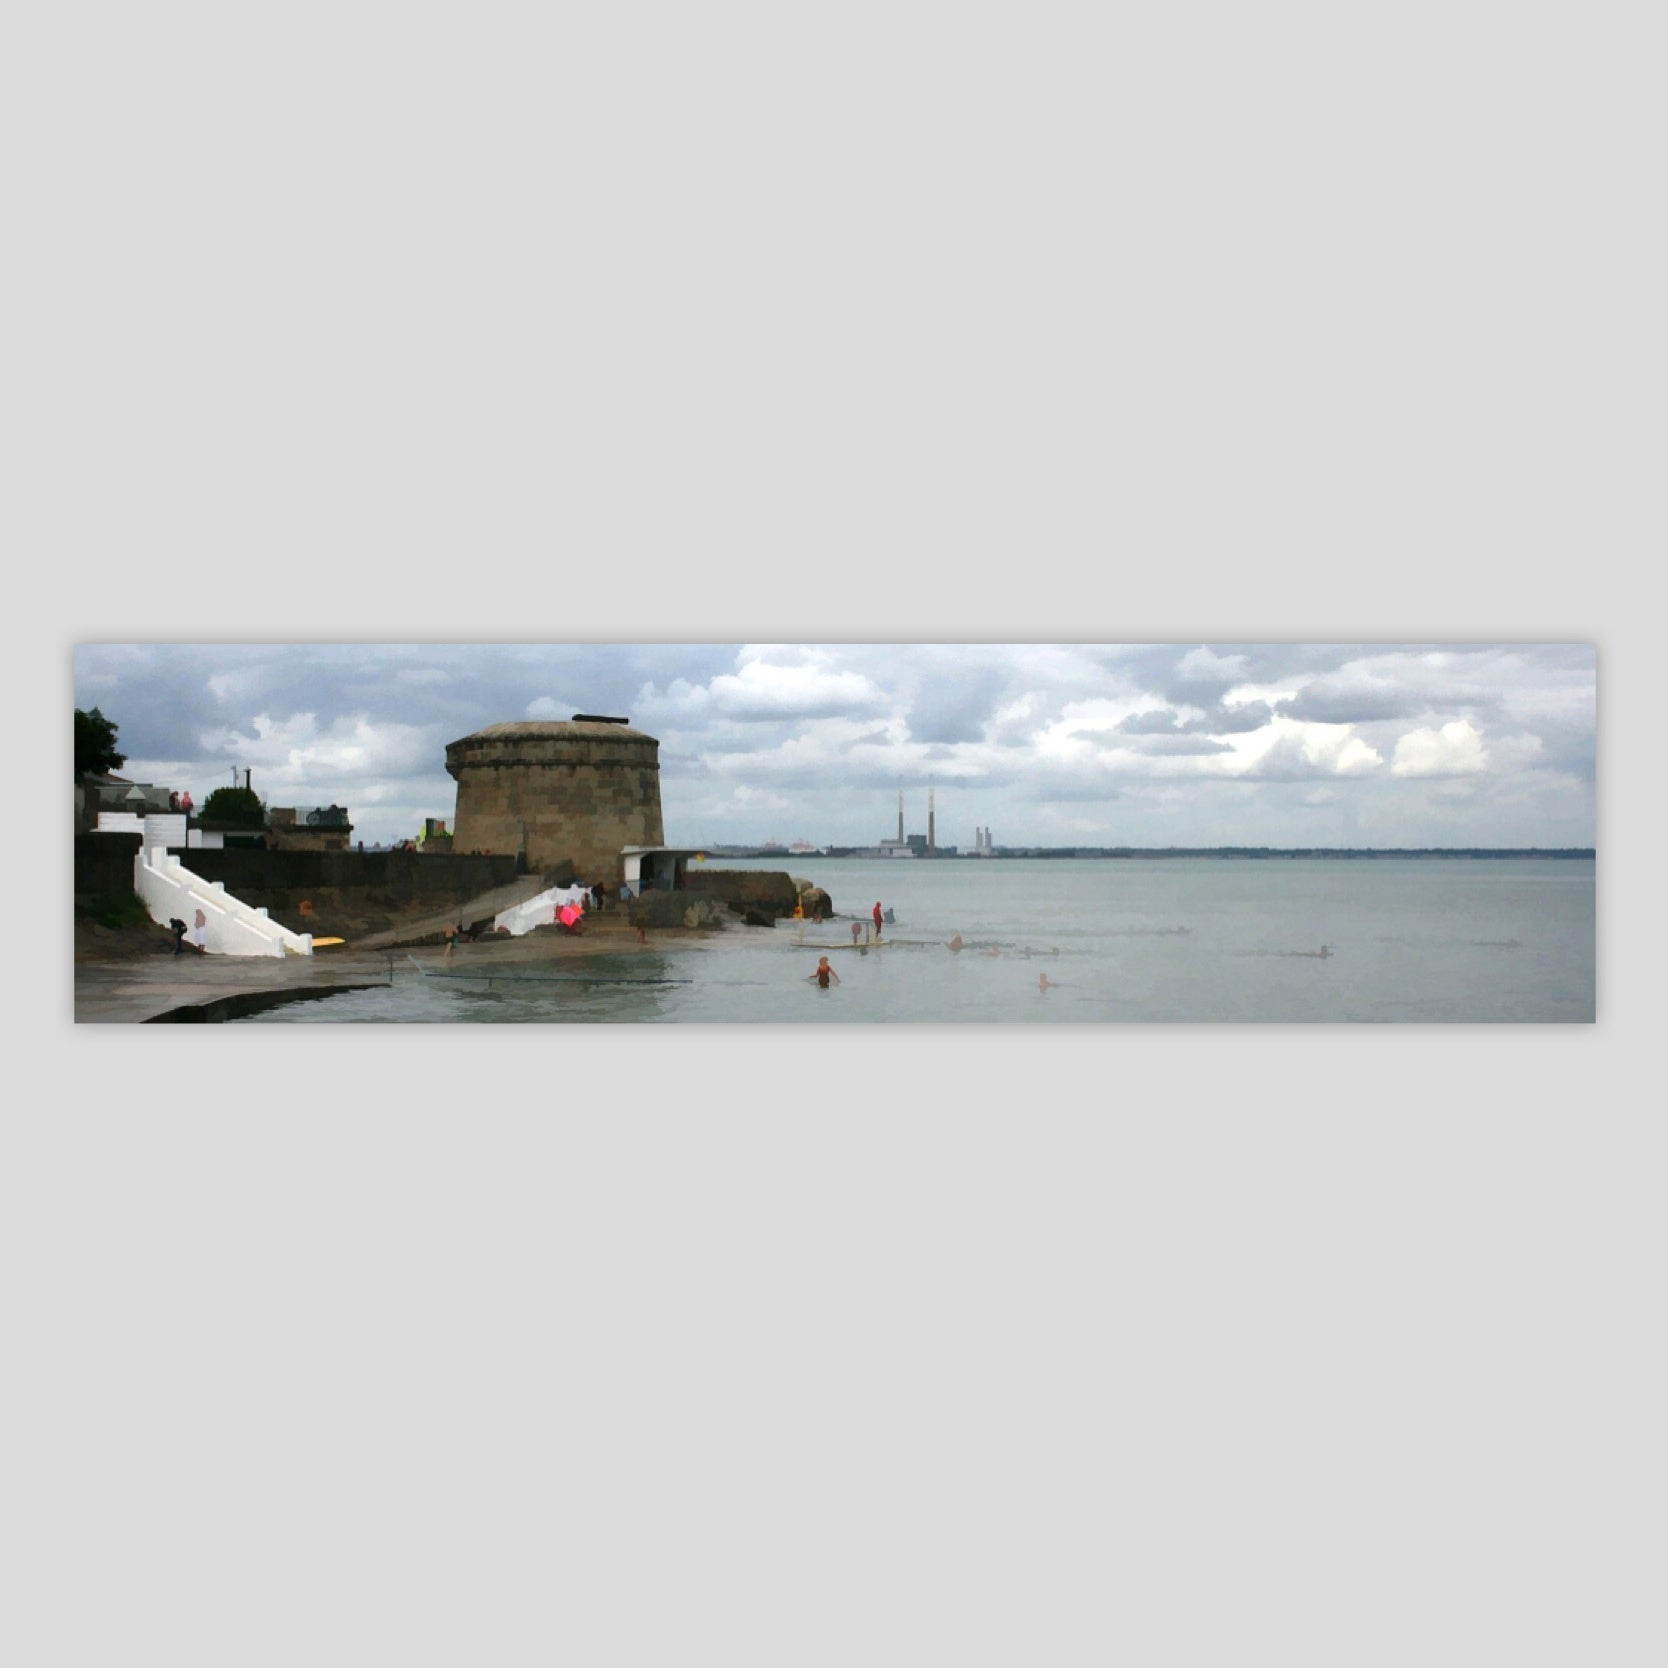 Seapoint Panorama 2 (3330bP-M3)